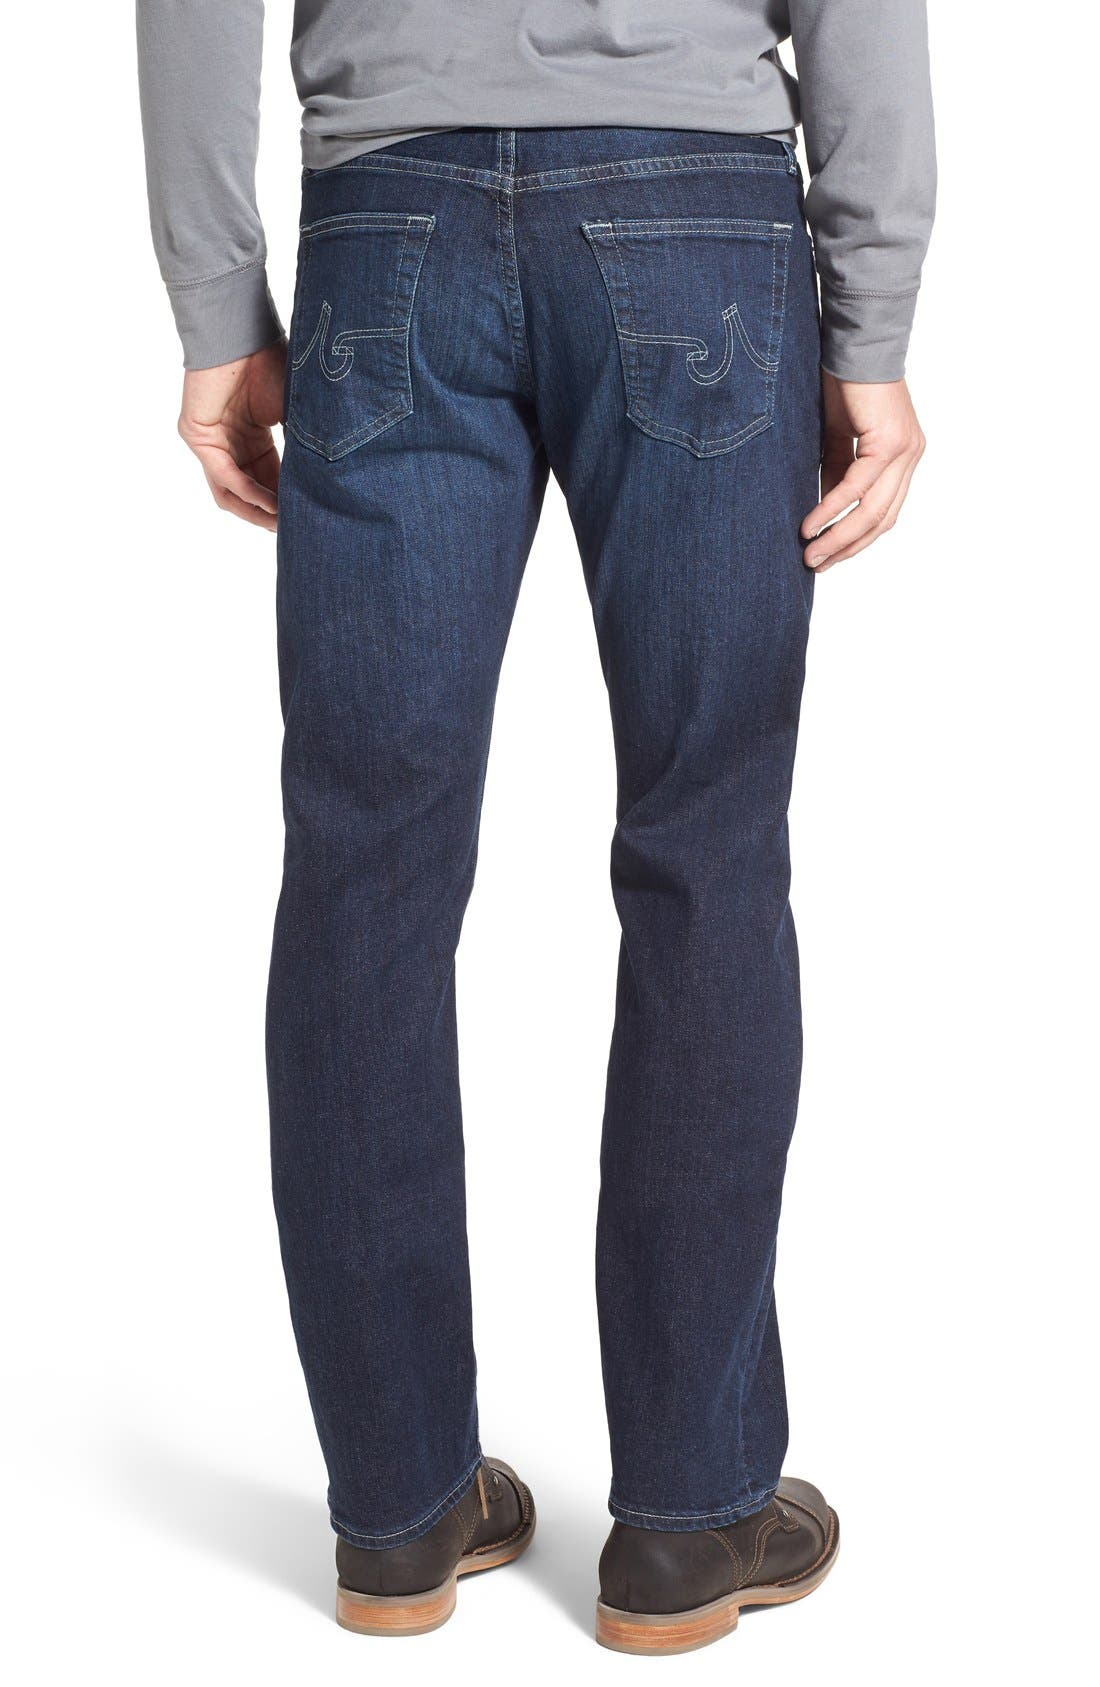 'Protégé' Straight Leg Jeans,                             Alternate thumbnail 2, color,                             Kingswell